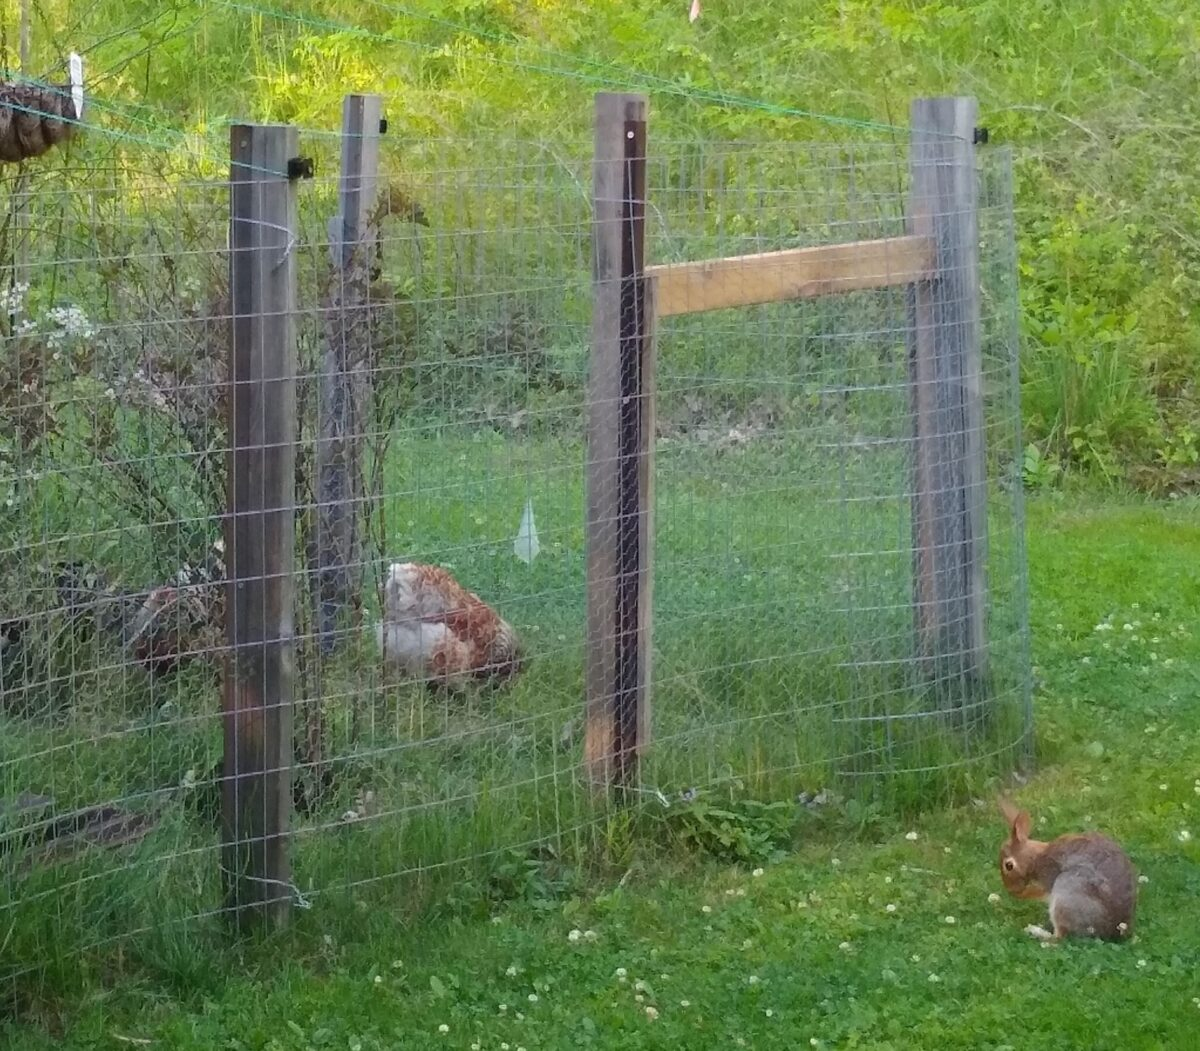 Image of two chickens on one side of a fence and a wild rabbit cleaning its face on the other.